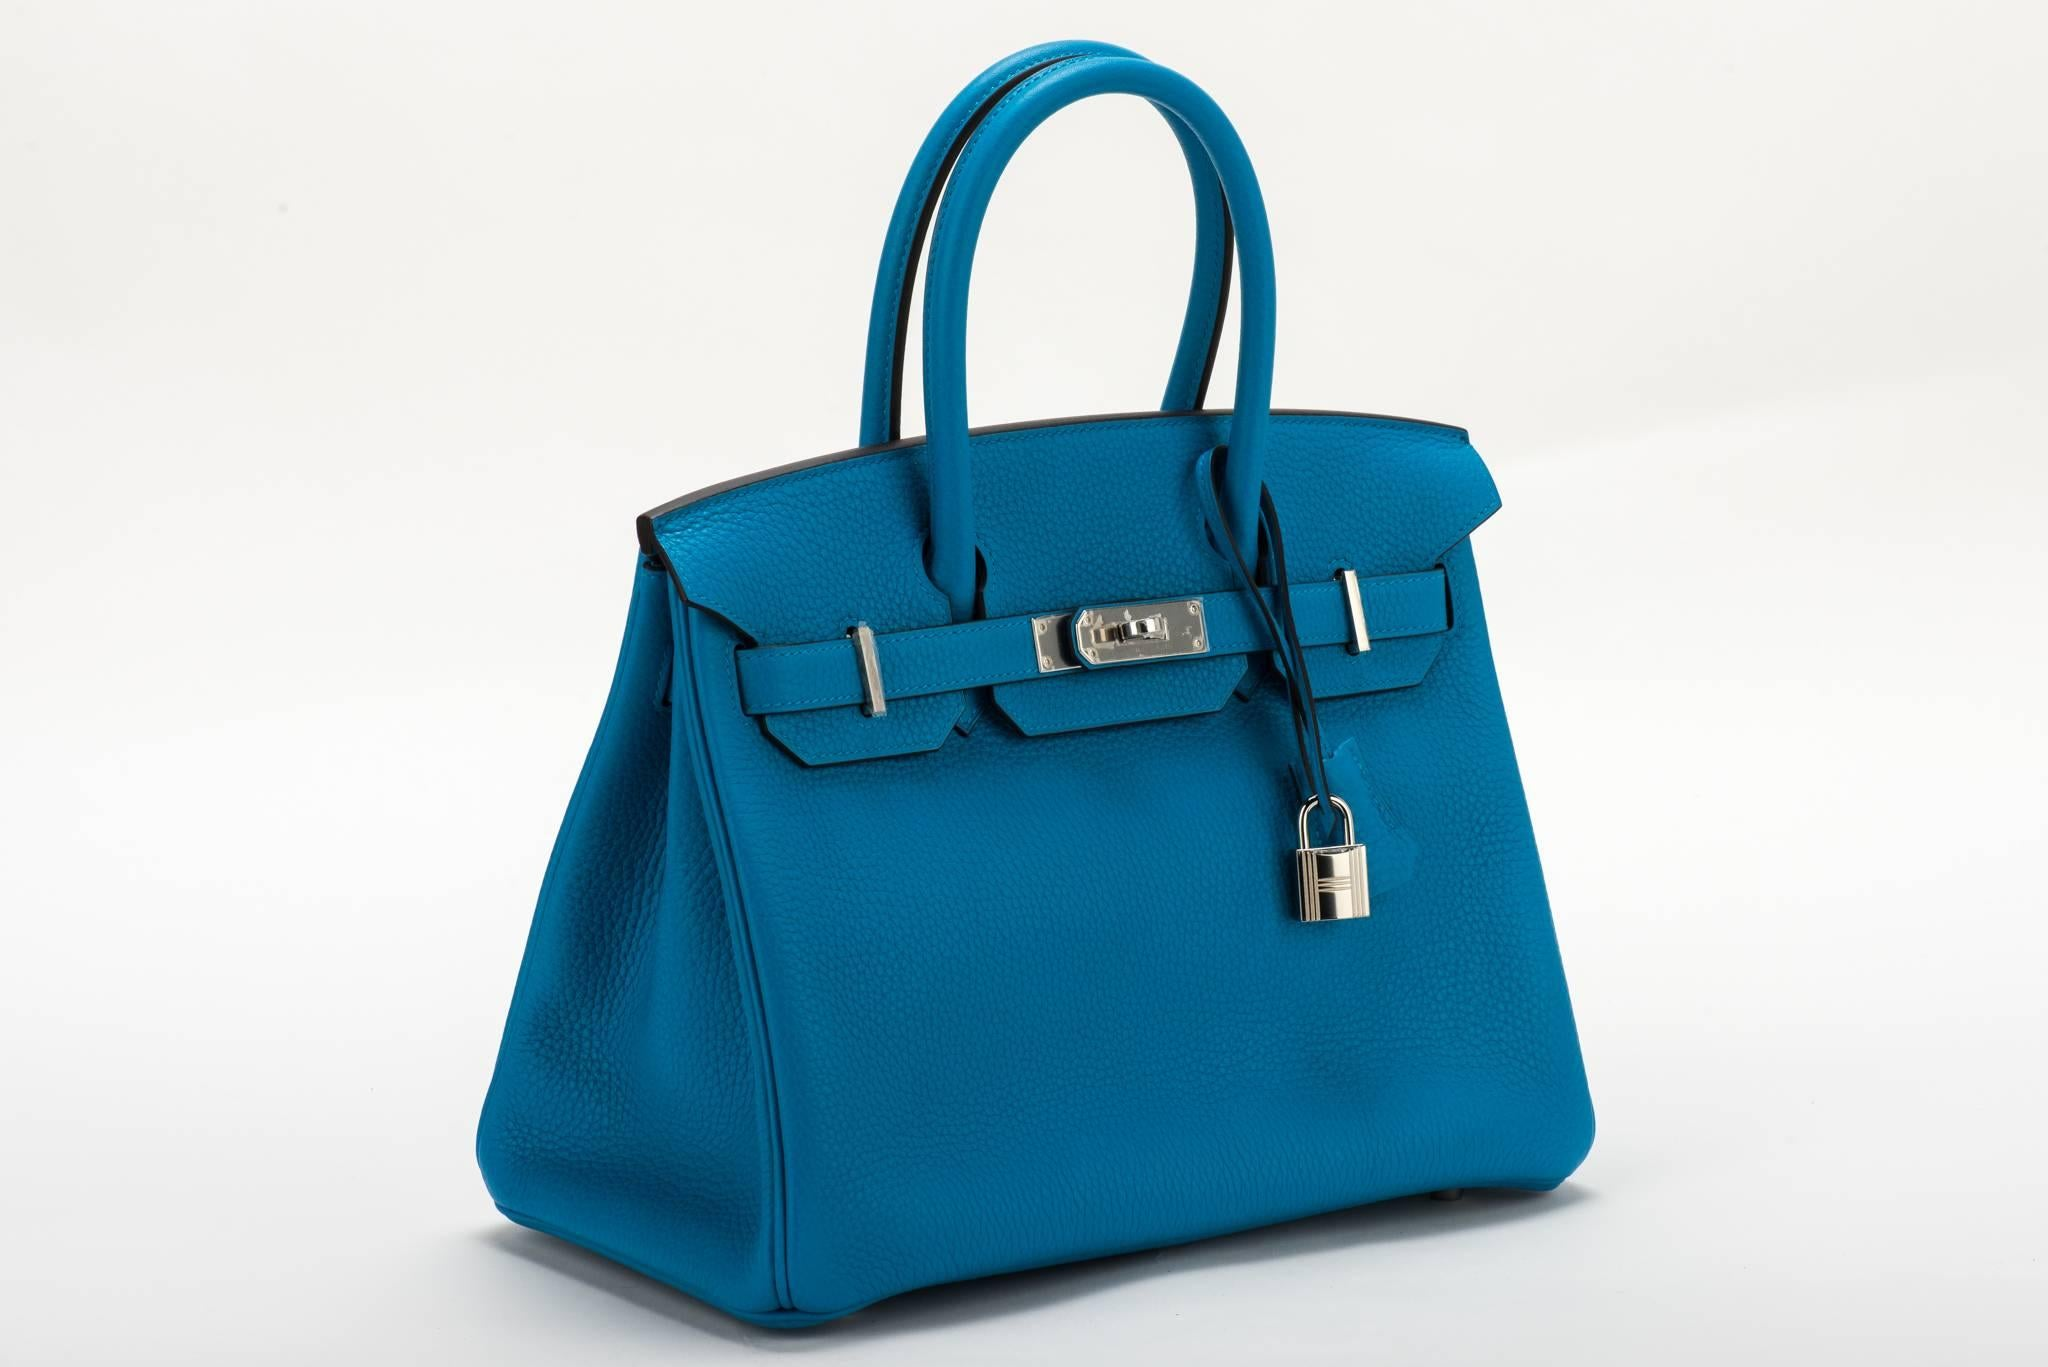 97fd6c306d14 ... italy hermes new authentic birkin 30 blue zanzibar togo bag. a stamp  for 2017.